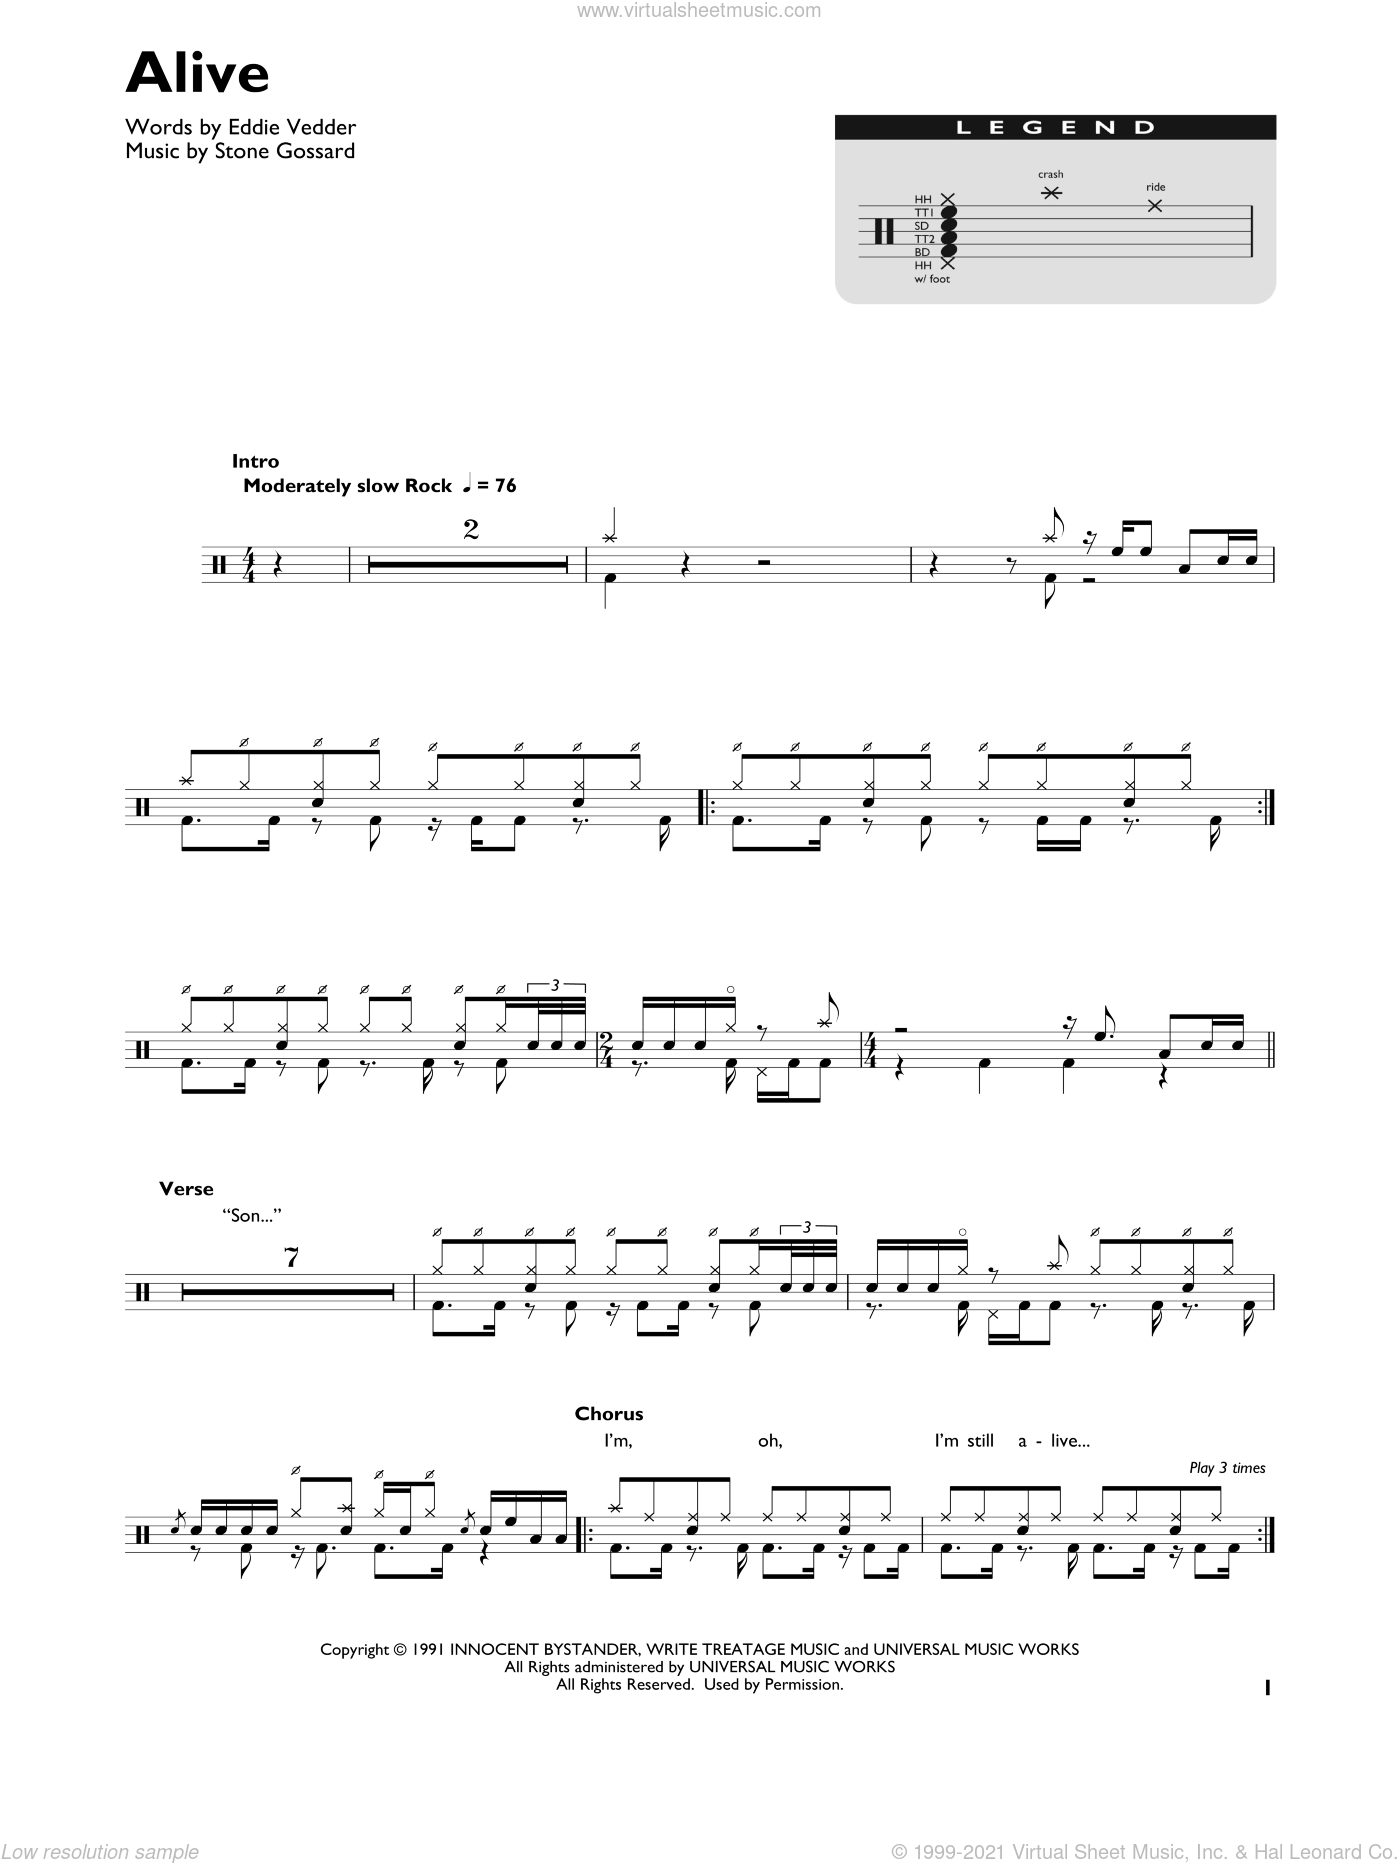 Alive sheet music for drums (percussions) by Pearl Jam, Eddie Vedder and Stone Gossard, intermediate skill level